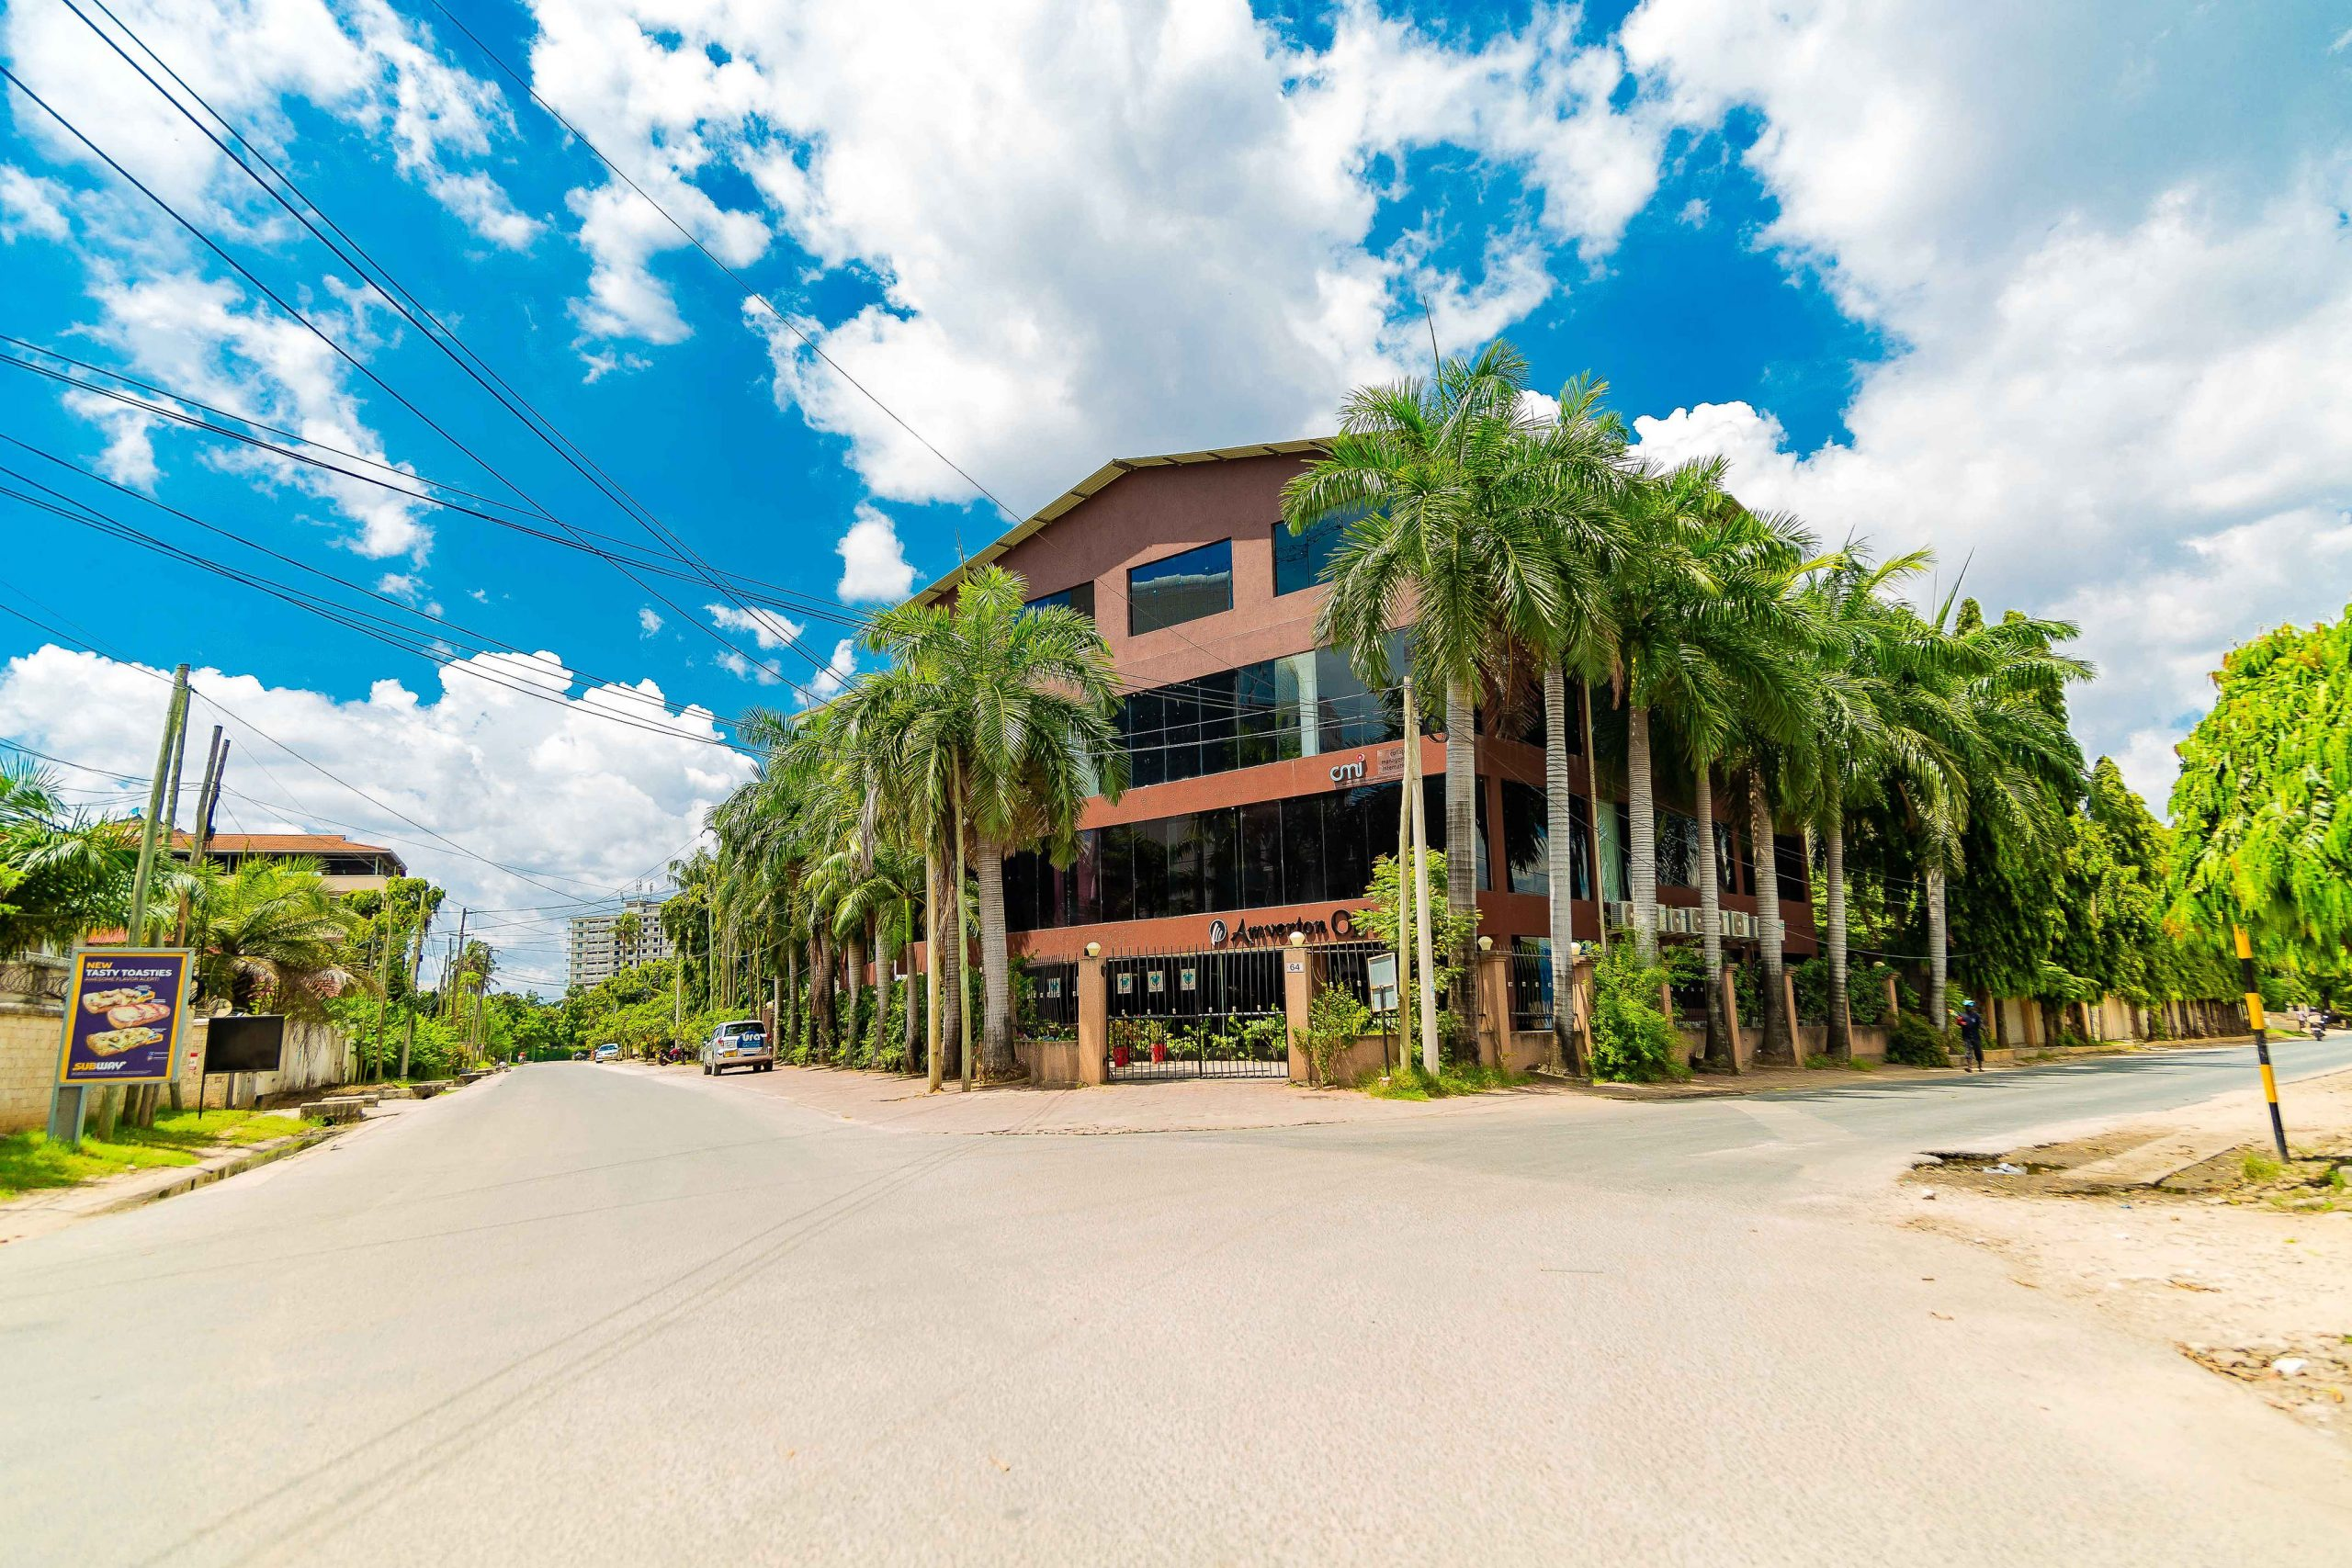 Commercial Offices for rent at Amverton Park upanga Dar es salaam